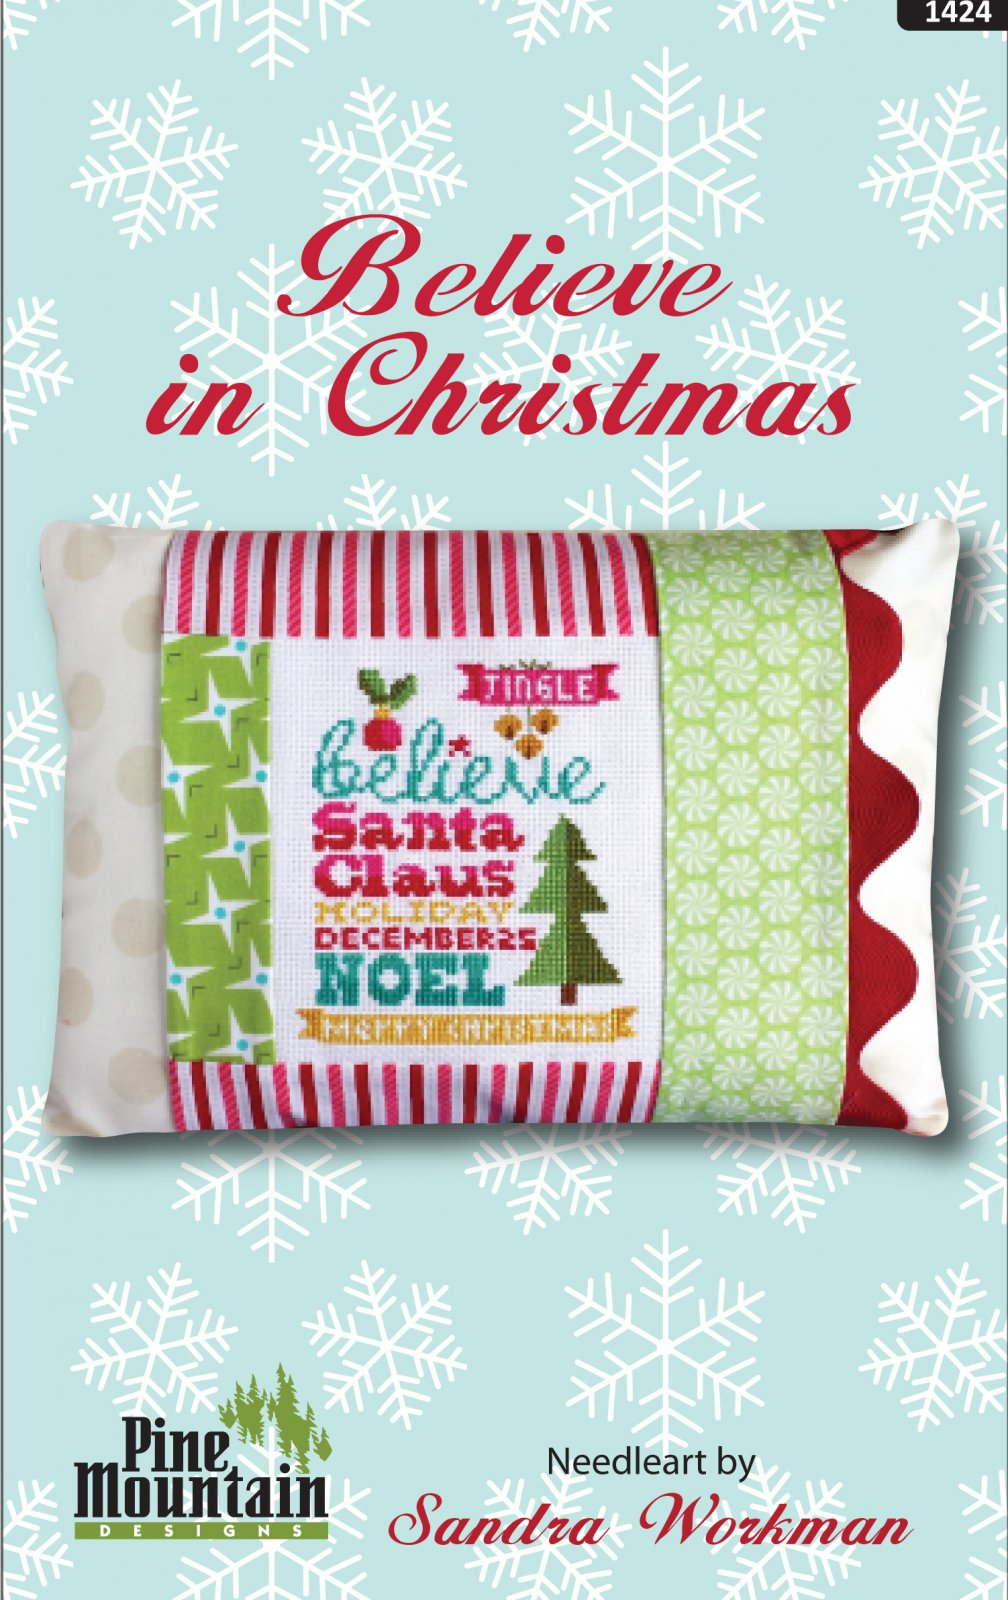 Believe in Christmas pillow kit #1424